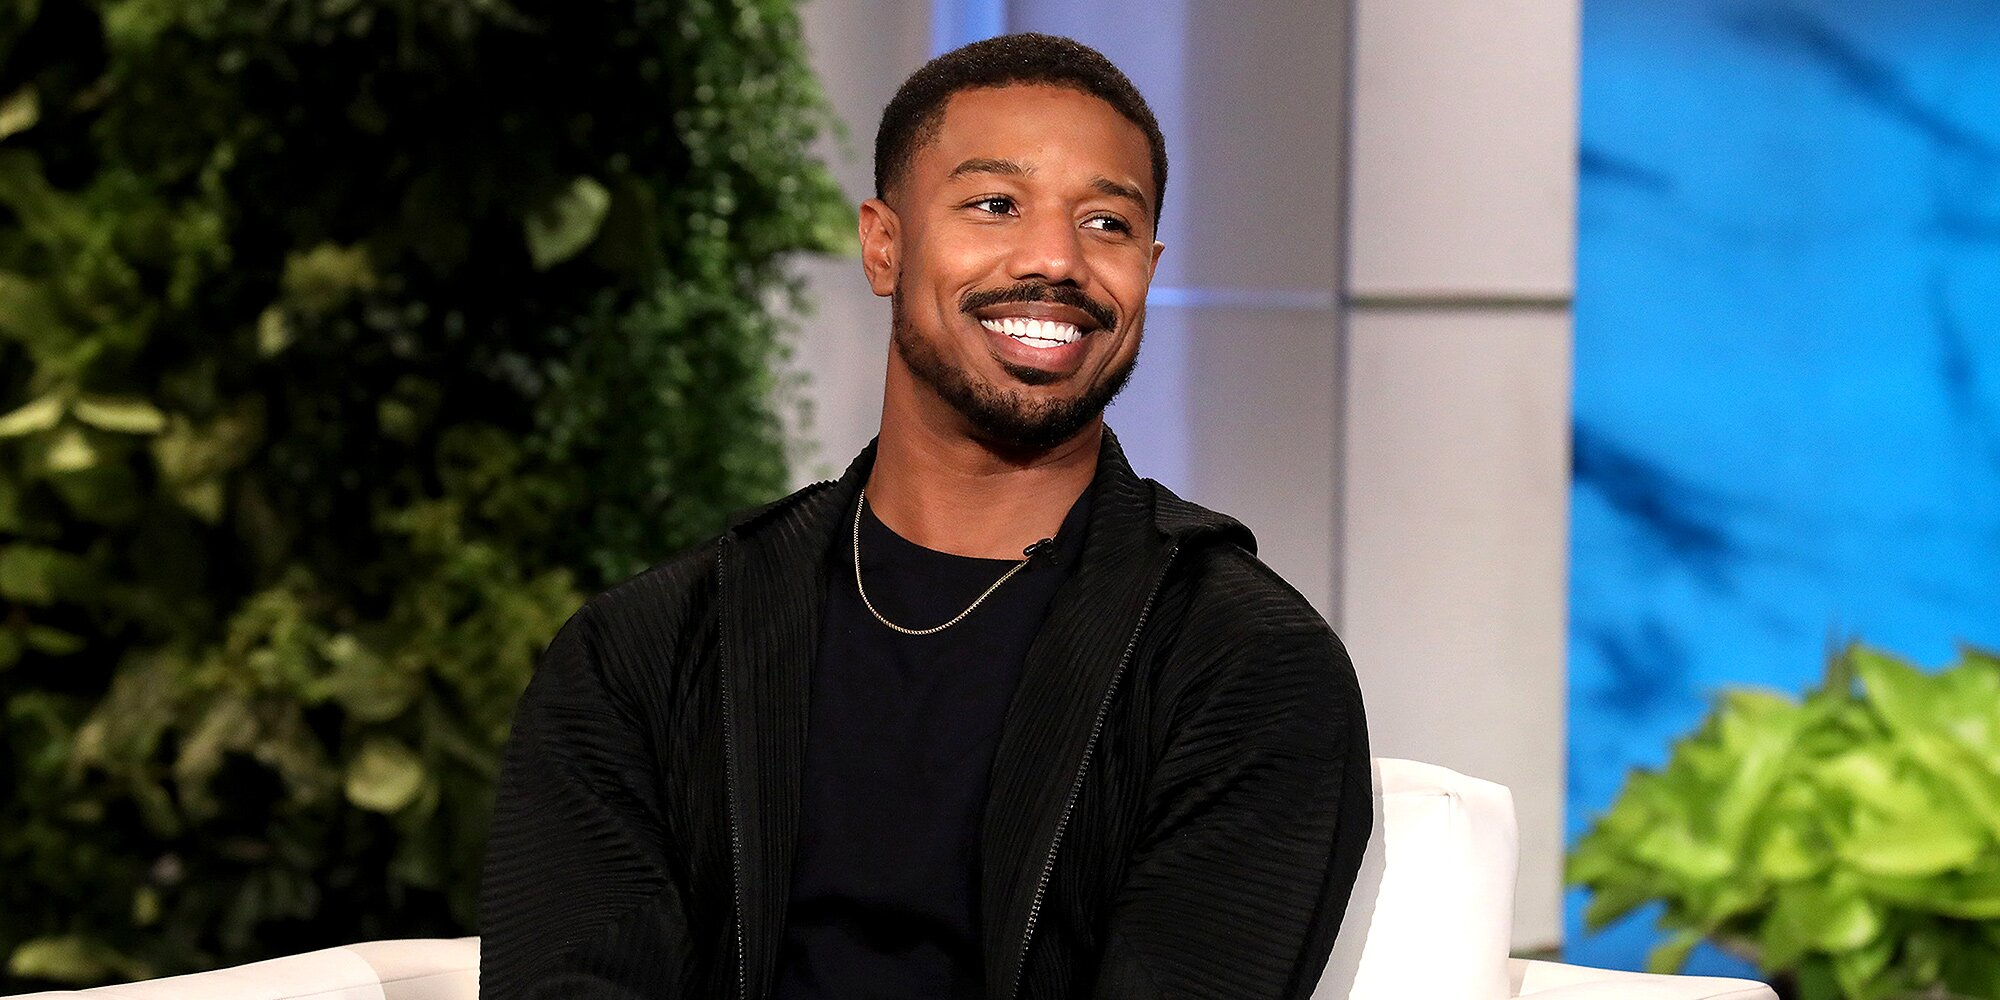 Michael B. Jordan Says He Plans to Break His Family's Naming Tradition with His Future Kids